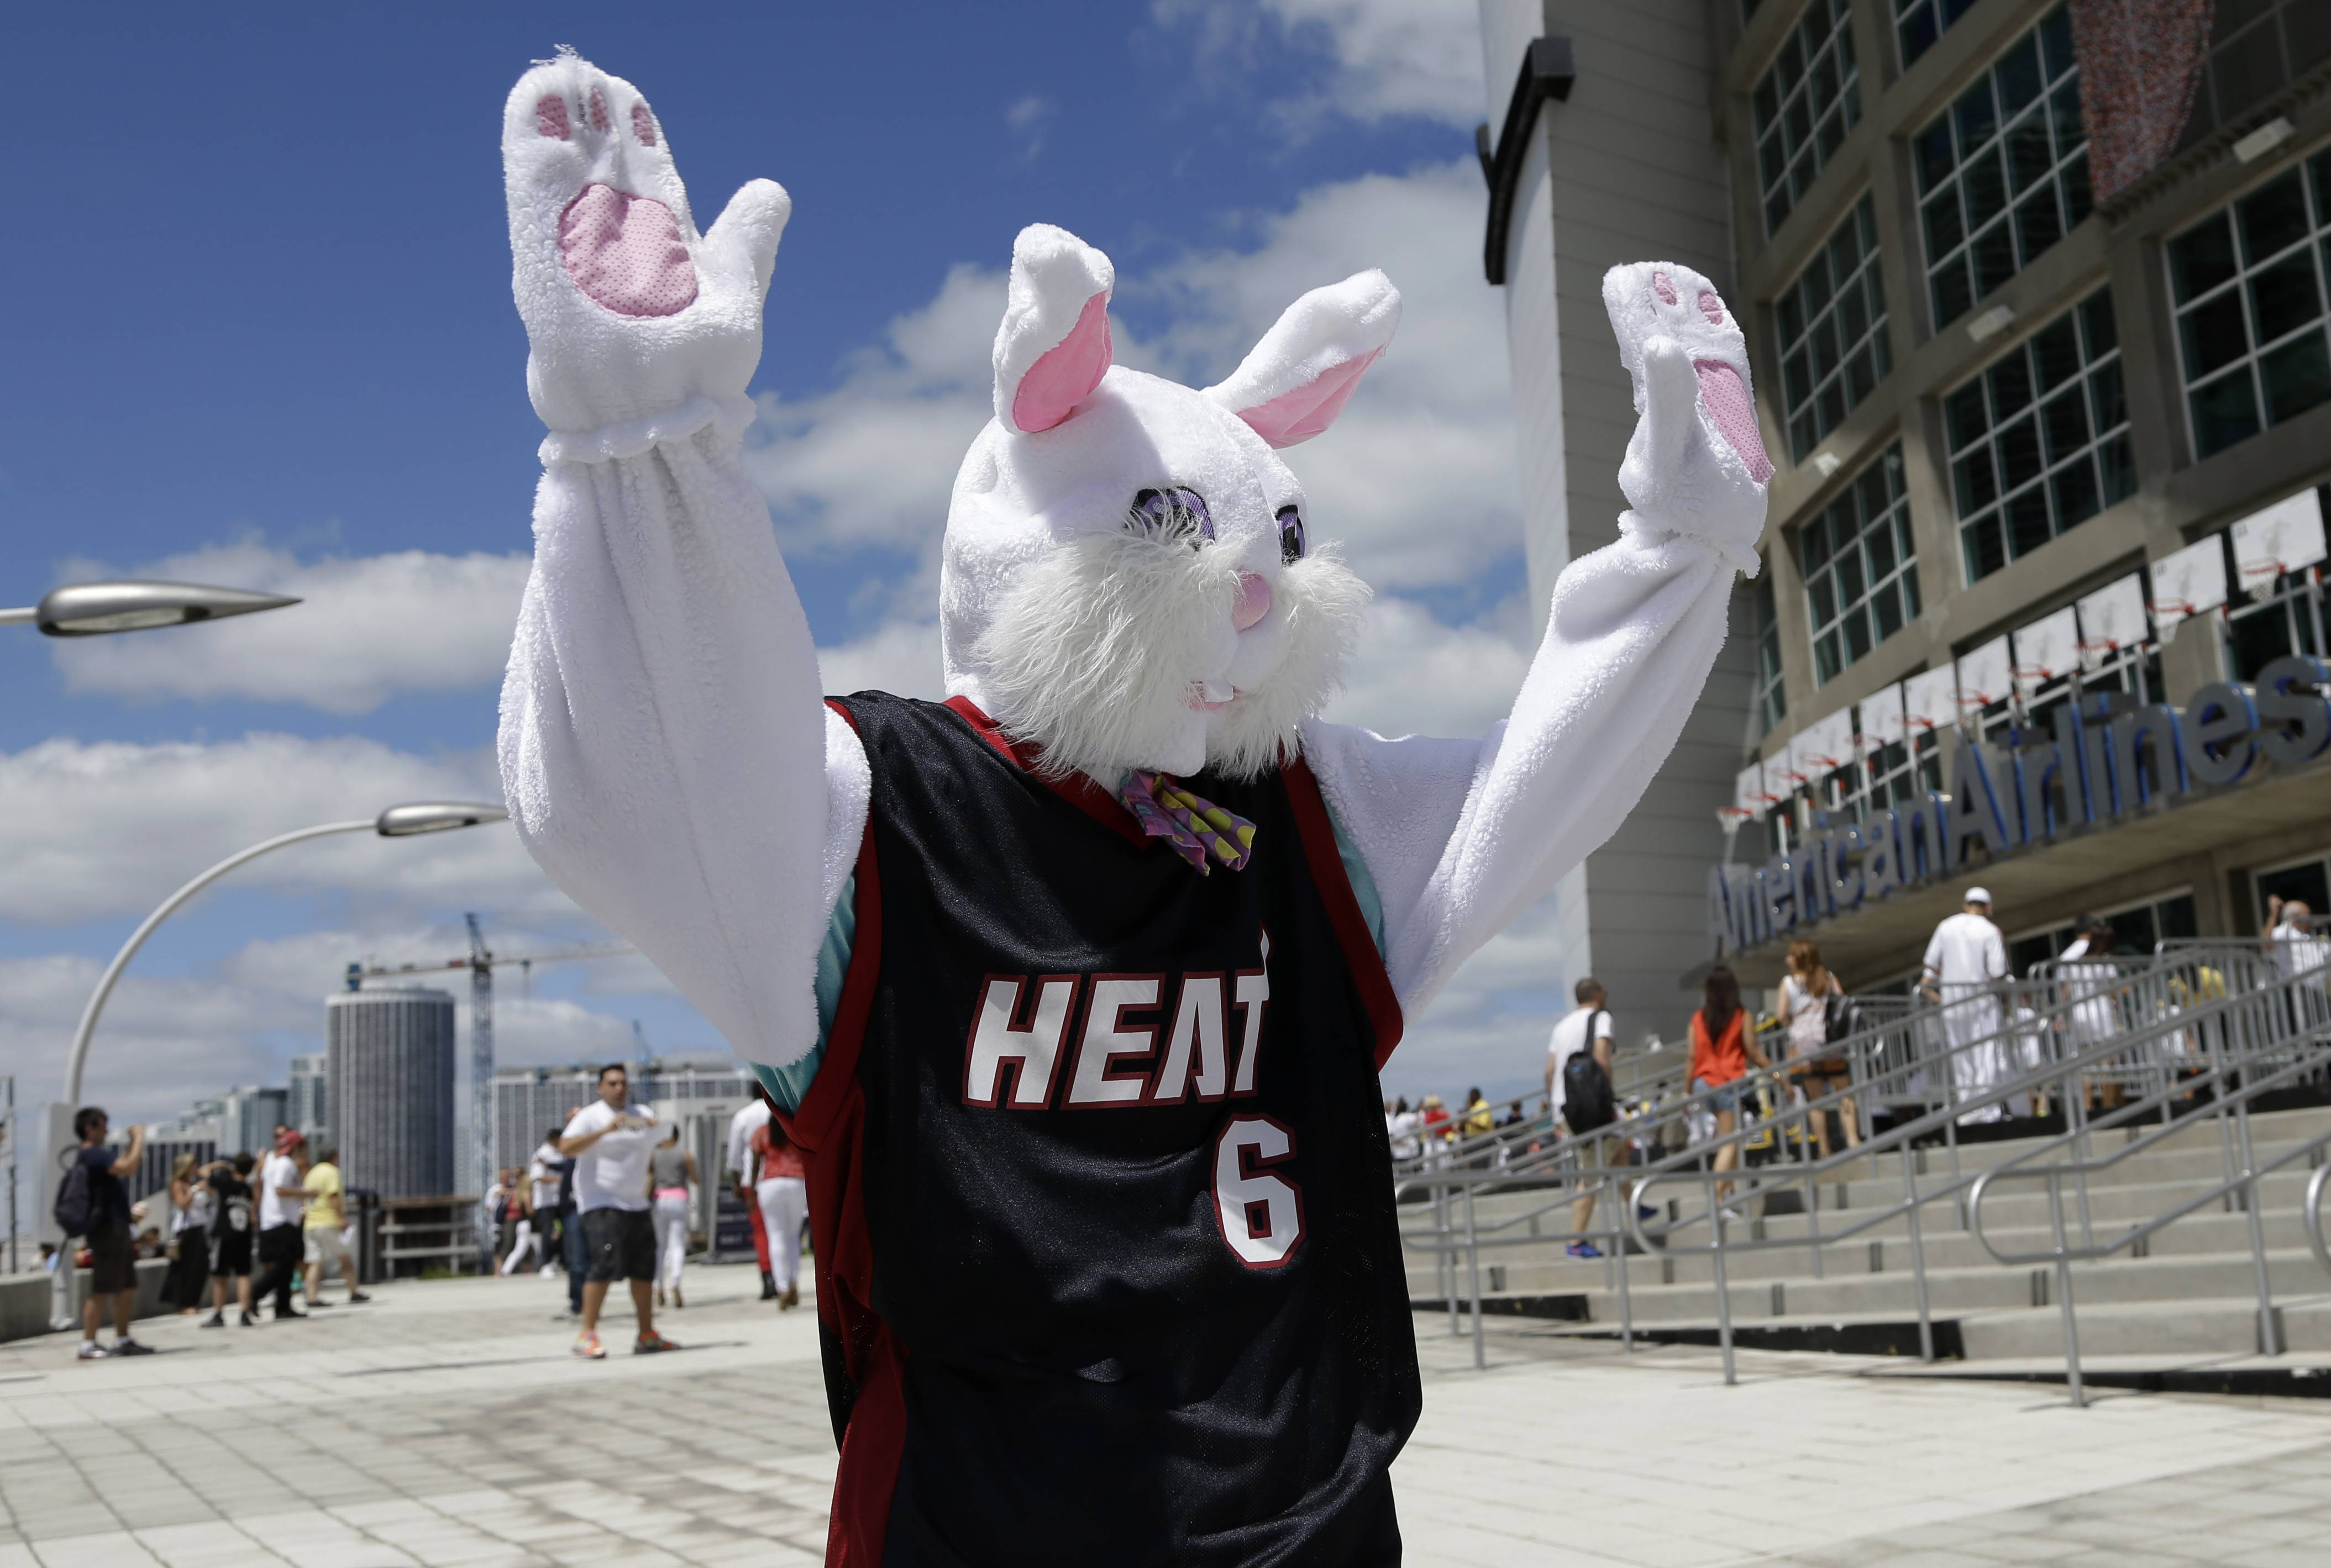 A person dressed as the Easter Bunny wears a LeBron James jersey and waves to fans as they arrive for Game 1 of an opening-round NBA basketball playoff series between the Miami Heat and the Charlotte Bobcats, Sunday, April 20, 2014, in Miami.